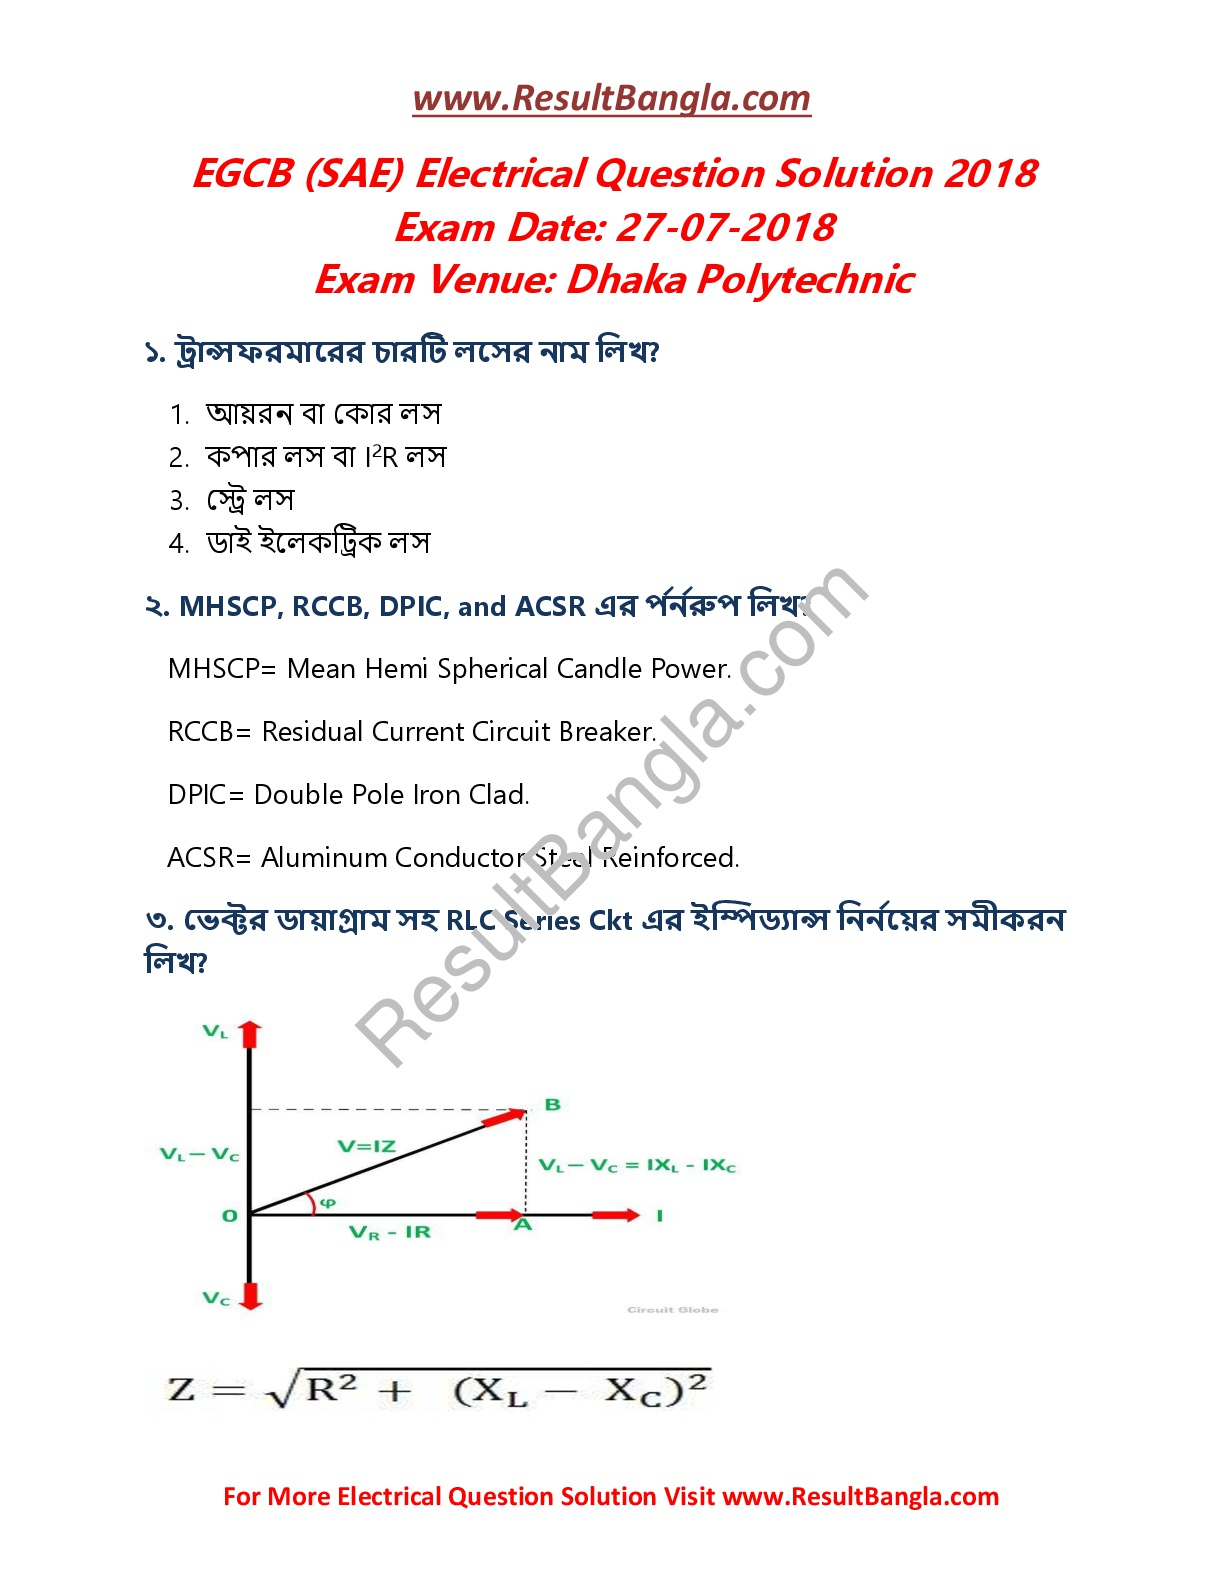 EGCB Job Question Solution 2018